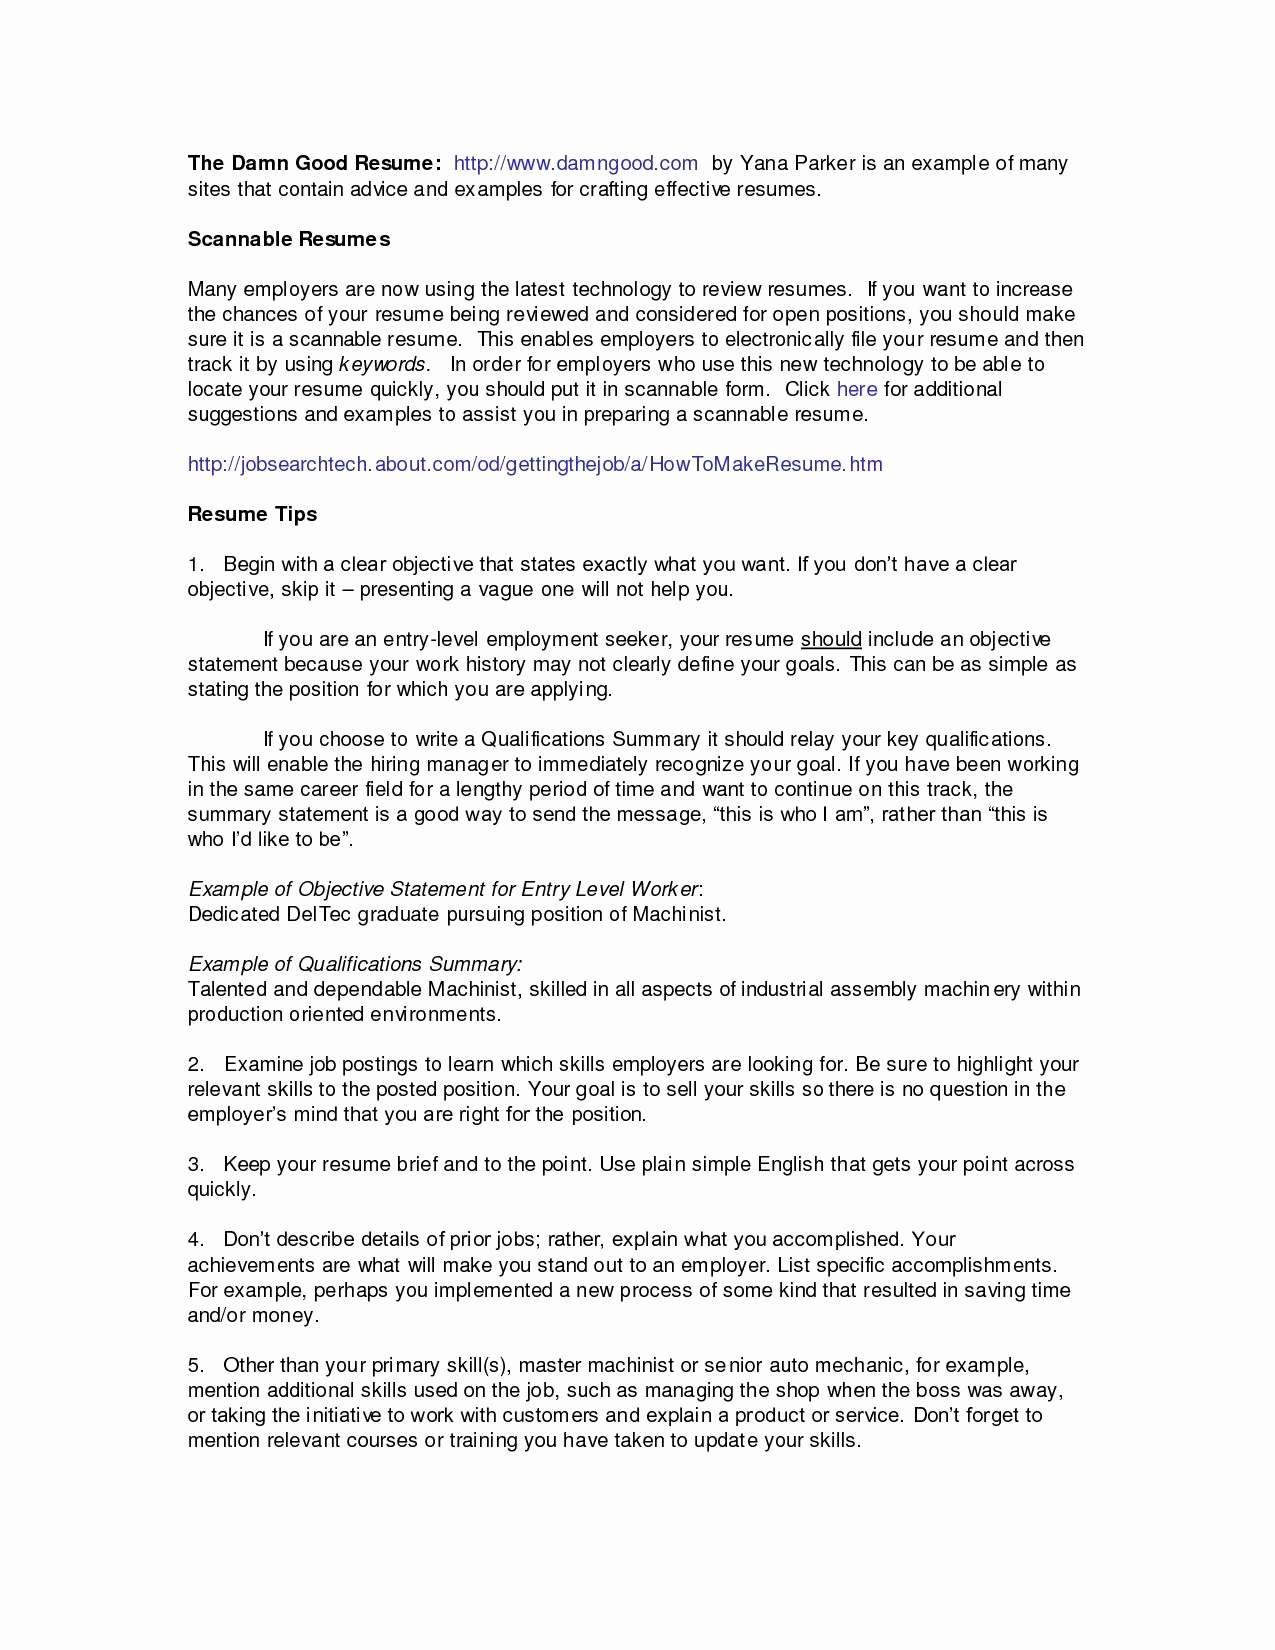 Medical assistant Resume with No Experience - Medical assistant Resume with No Experience